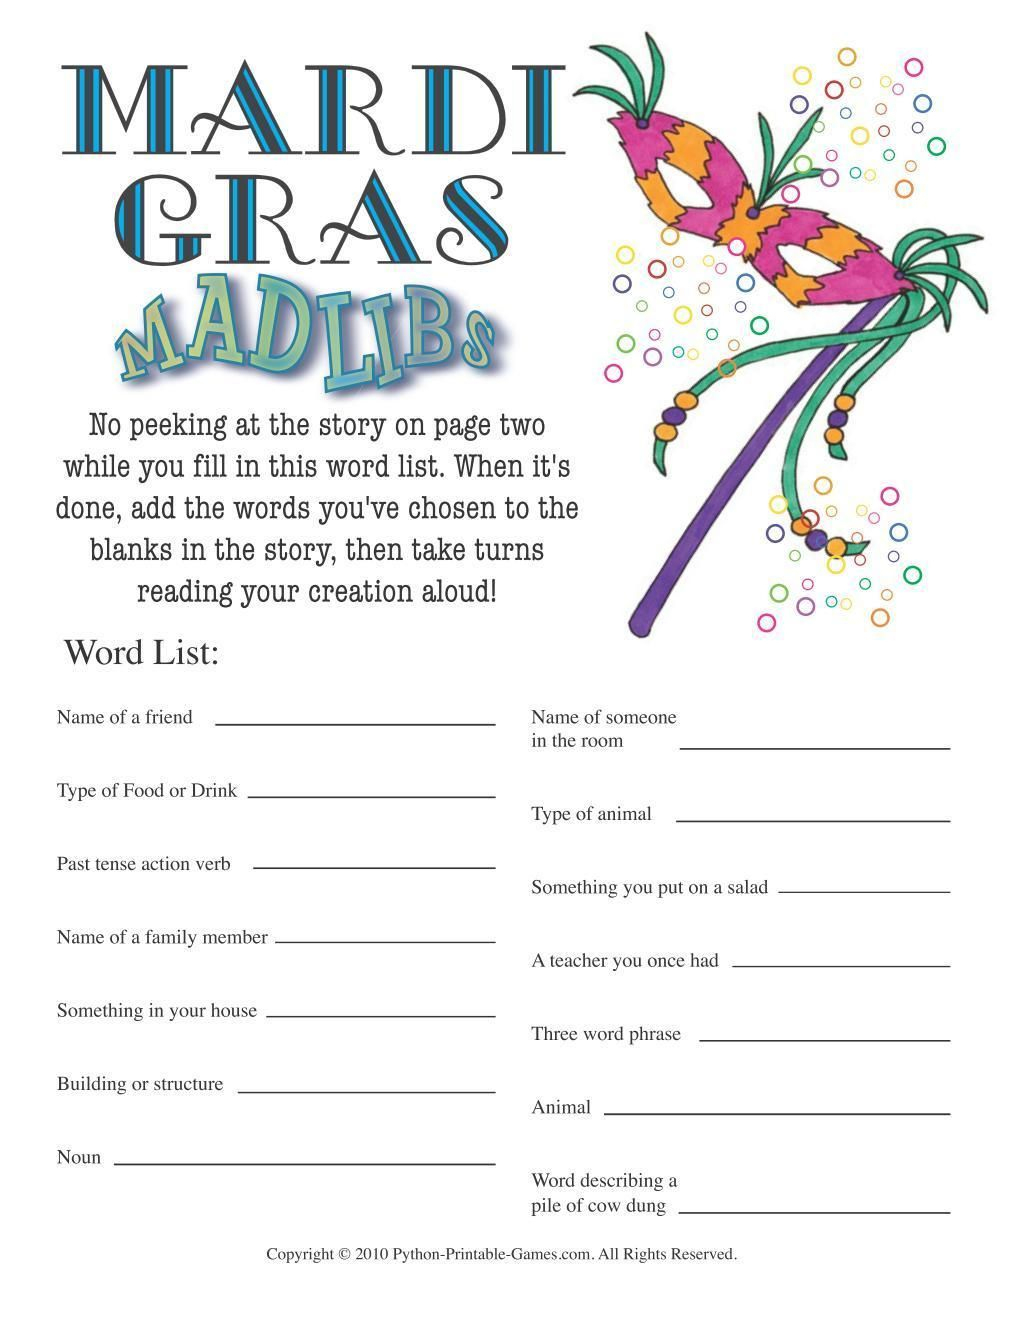 Frequently Asked Questions Contact - About Us All Our Games Blog - Free Printable Mardi Gras Games